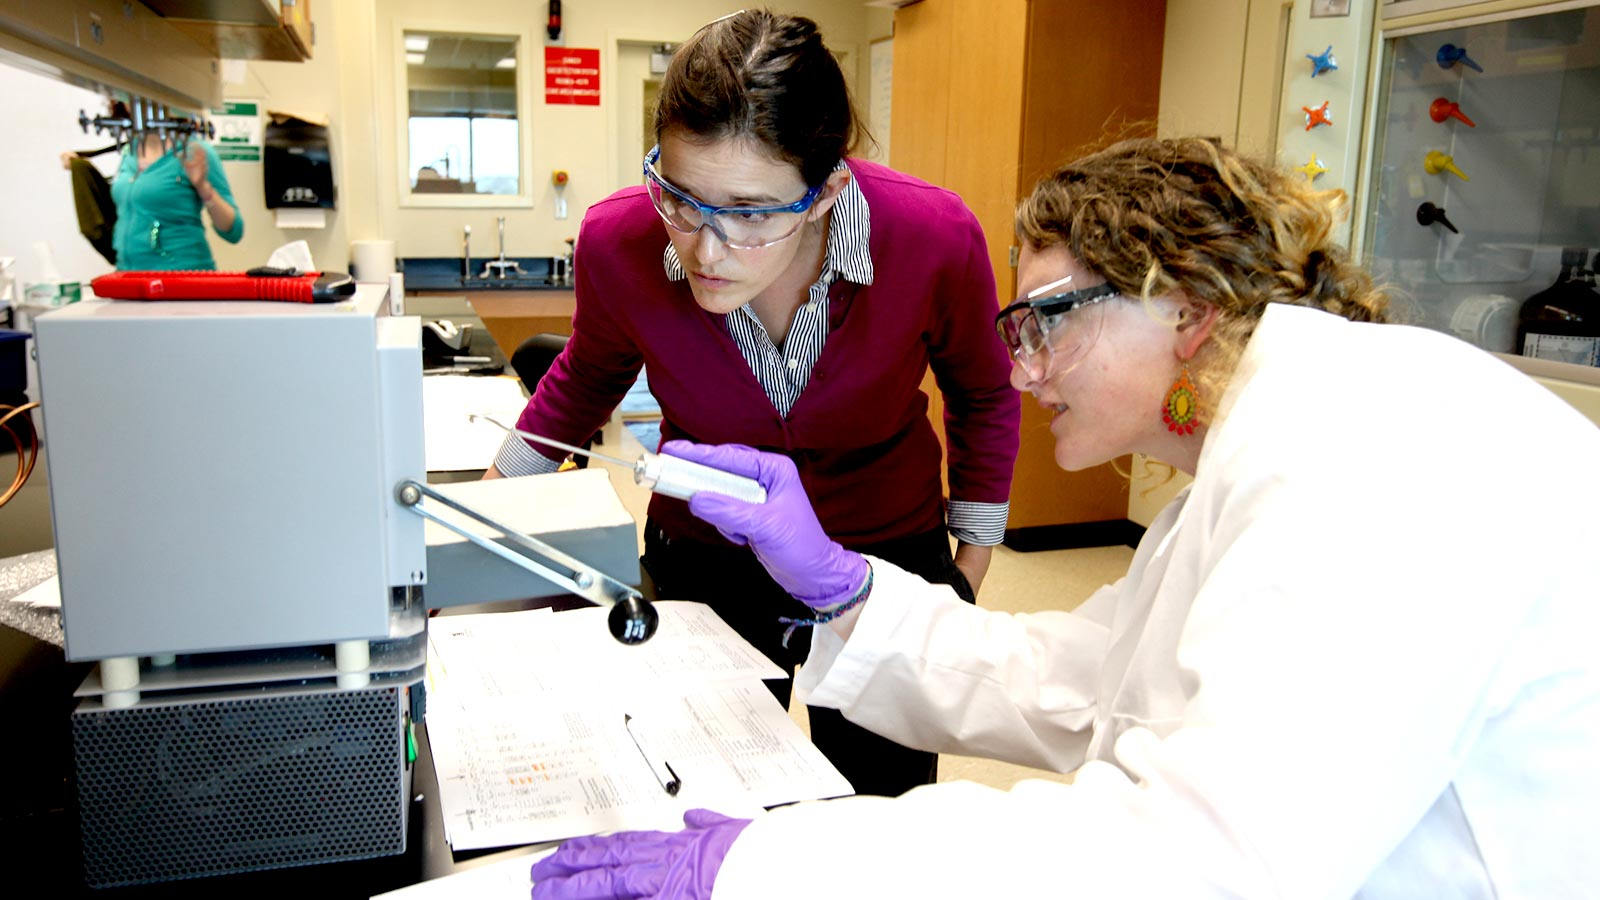 Research at Baylor offers graduate students the ability to learn alongside world-class faculty who enjoy an atmosphere in which research, teamwork, and faith are valued.